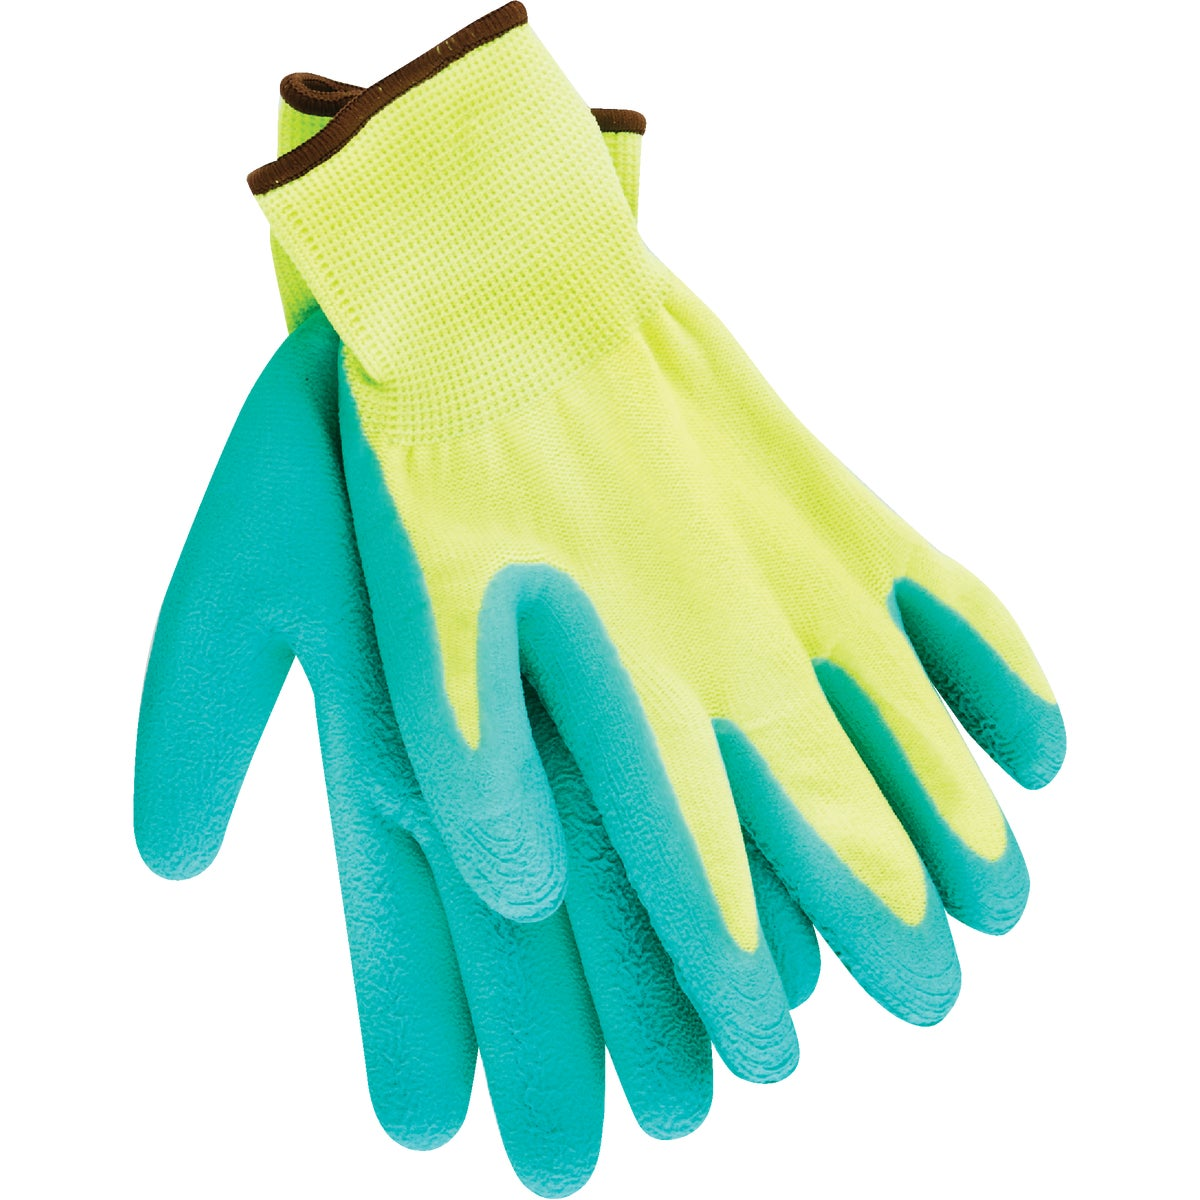 GREEN SMALL GRIP GLOVE - 703457 by Do it Best